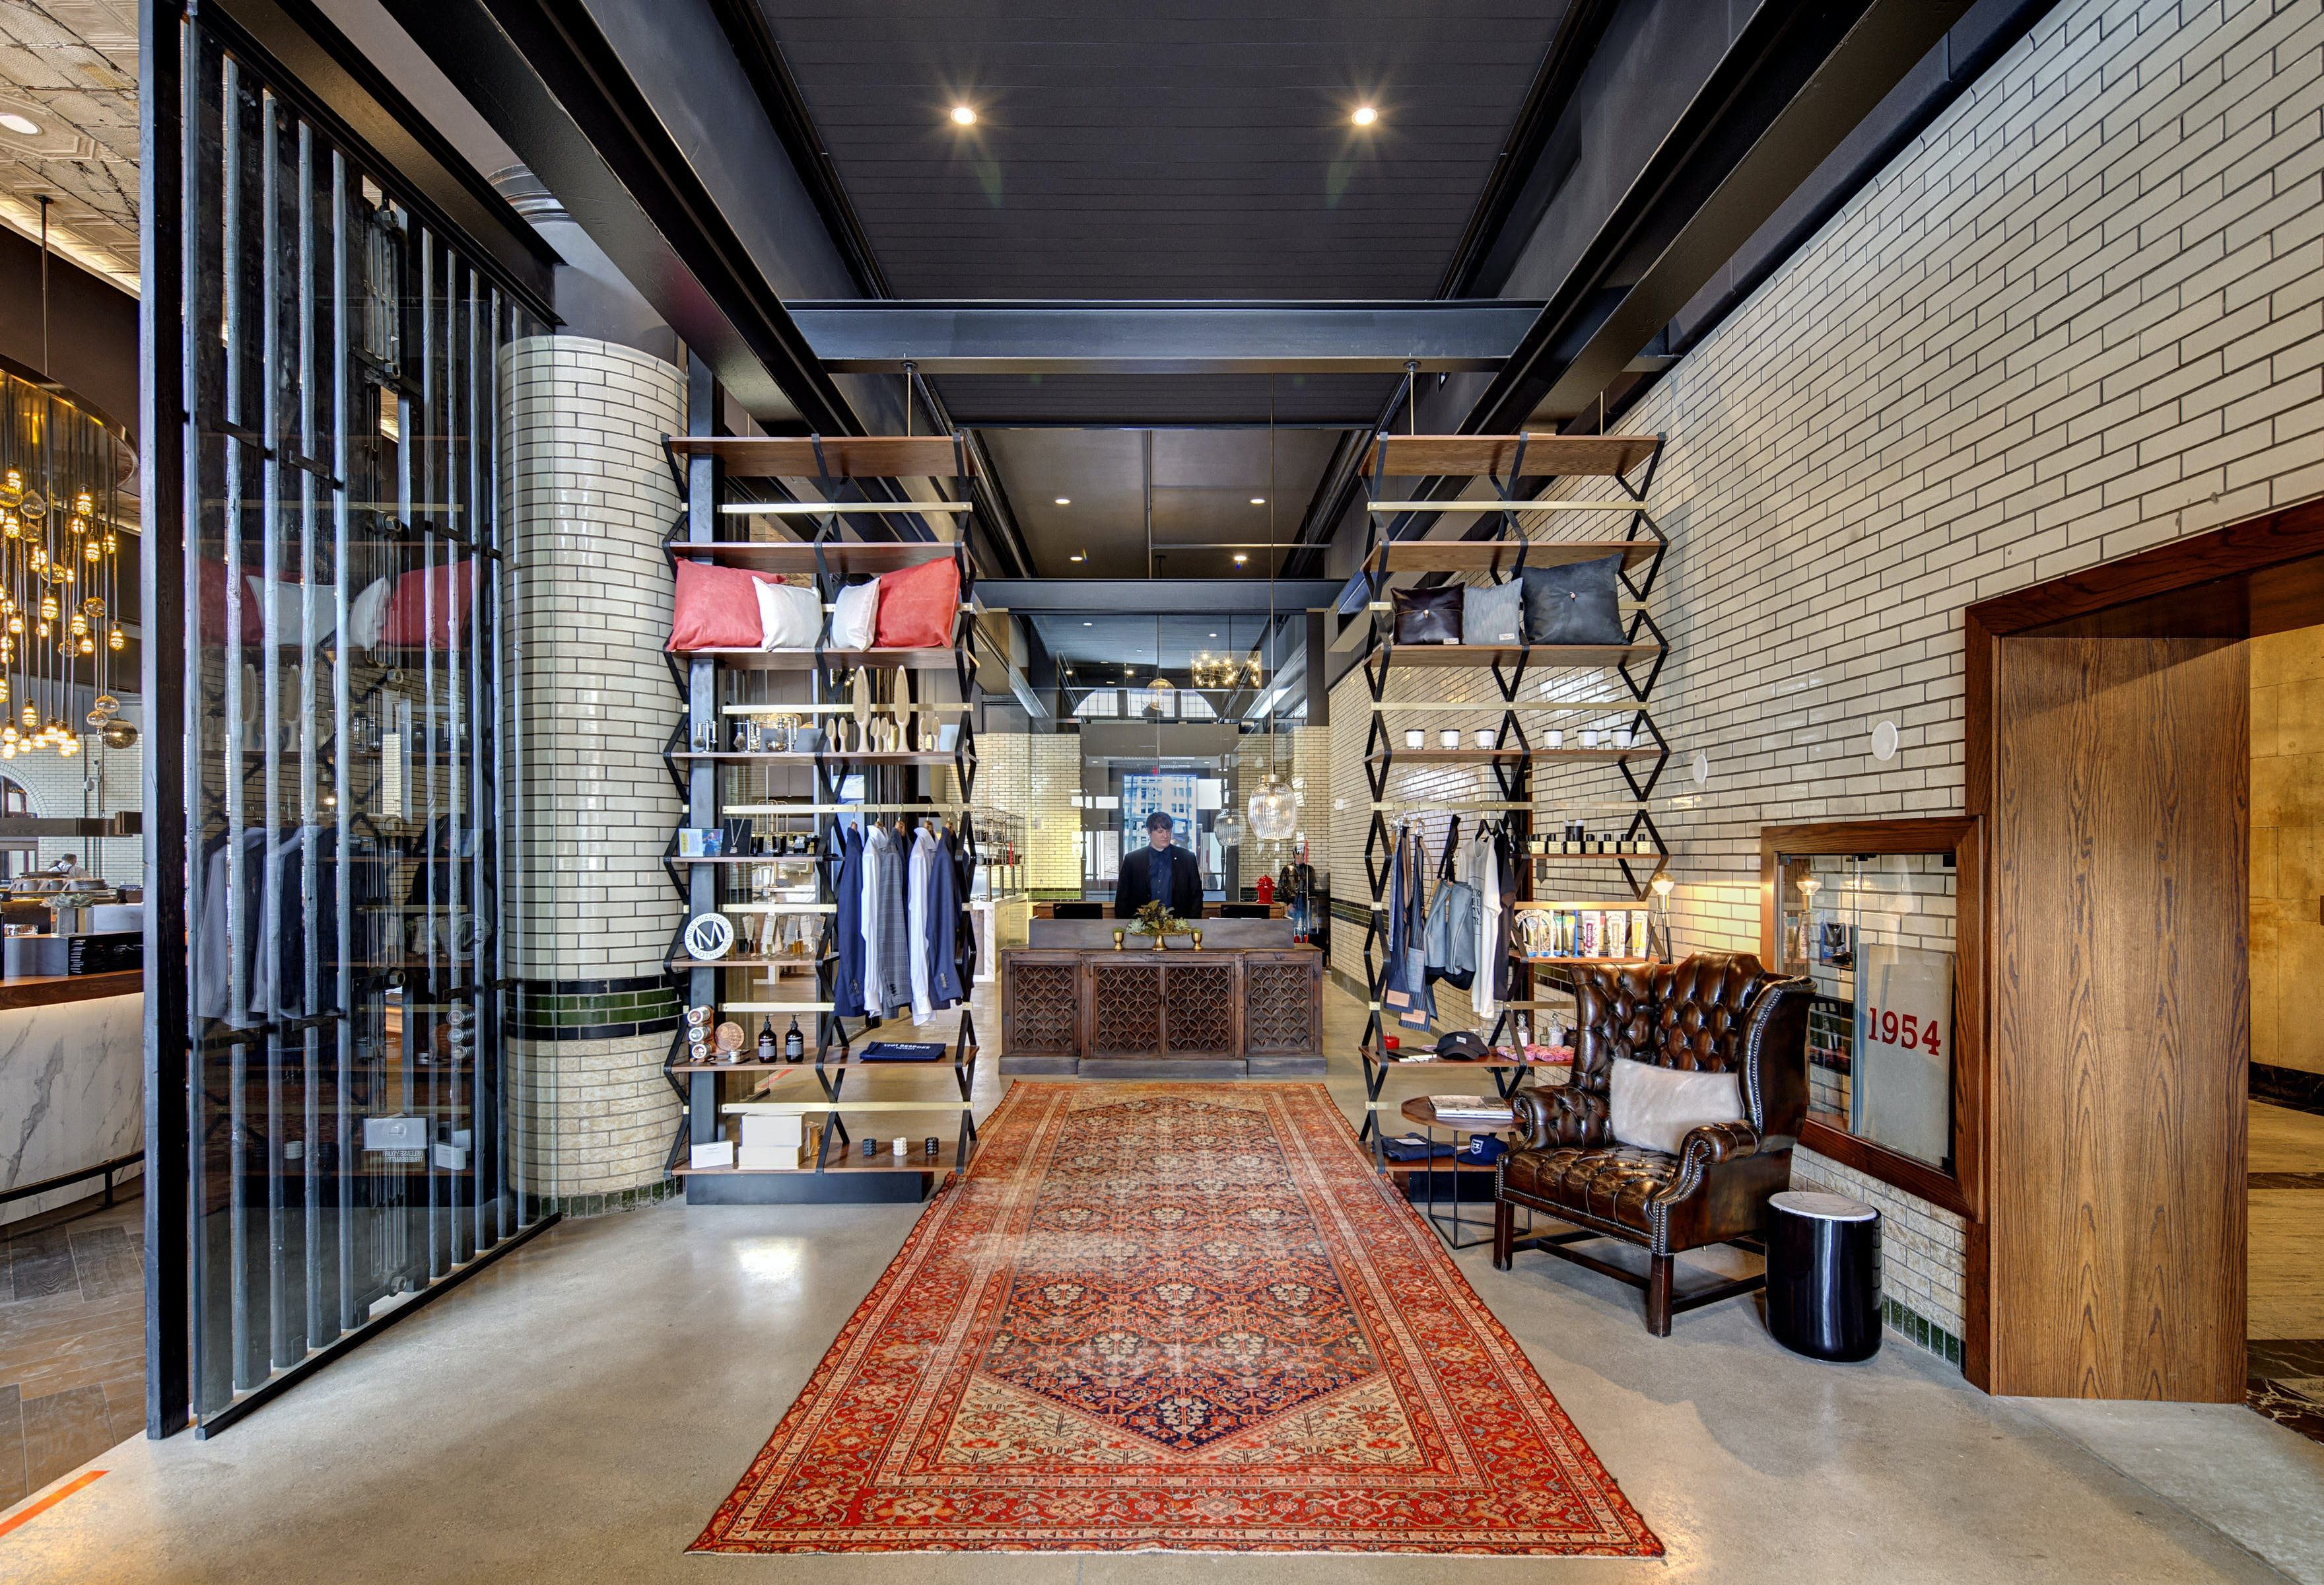 Foundation hotel former detroit fire dept headquarters - Interior design jobs in michigan ...